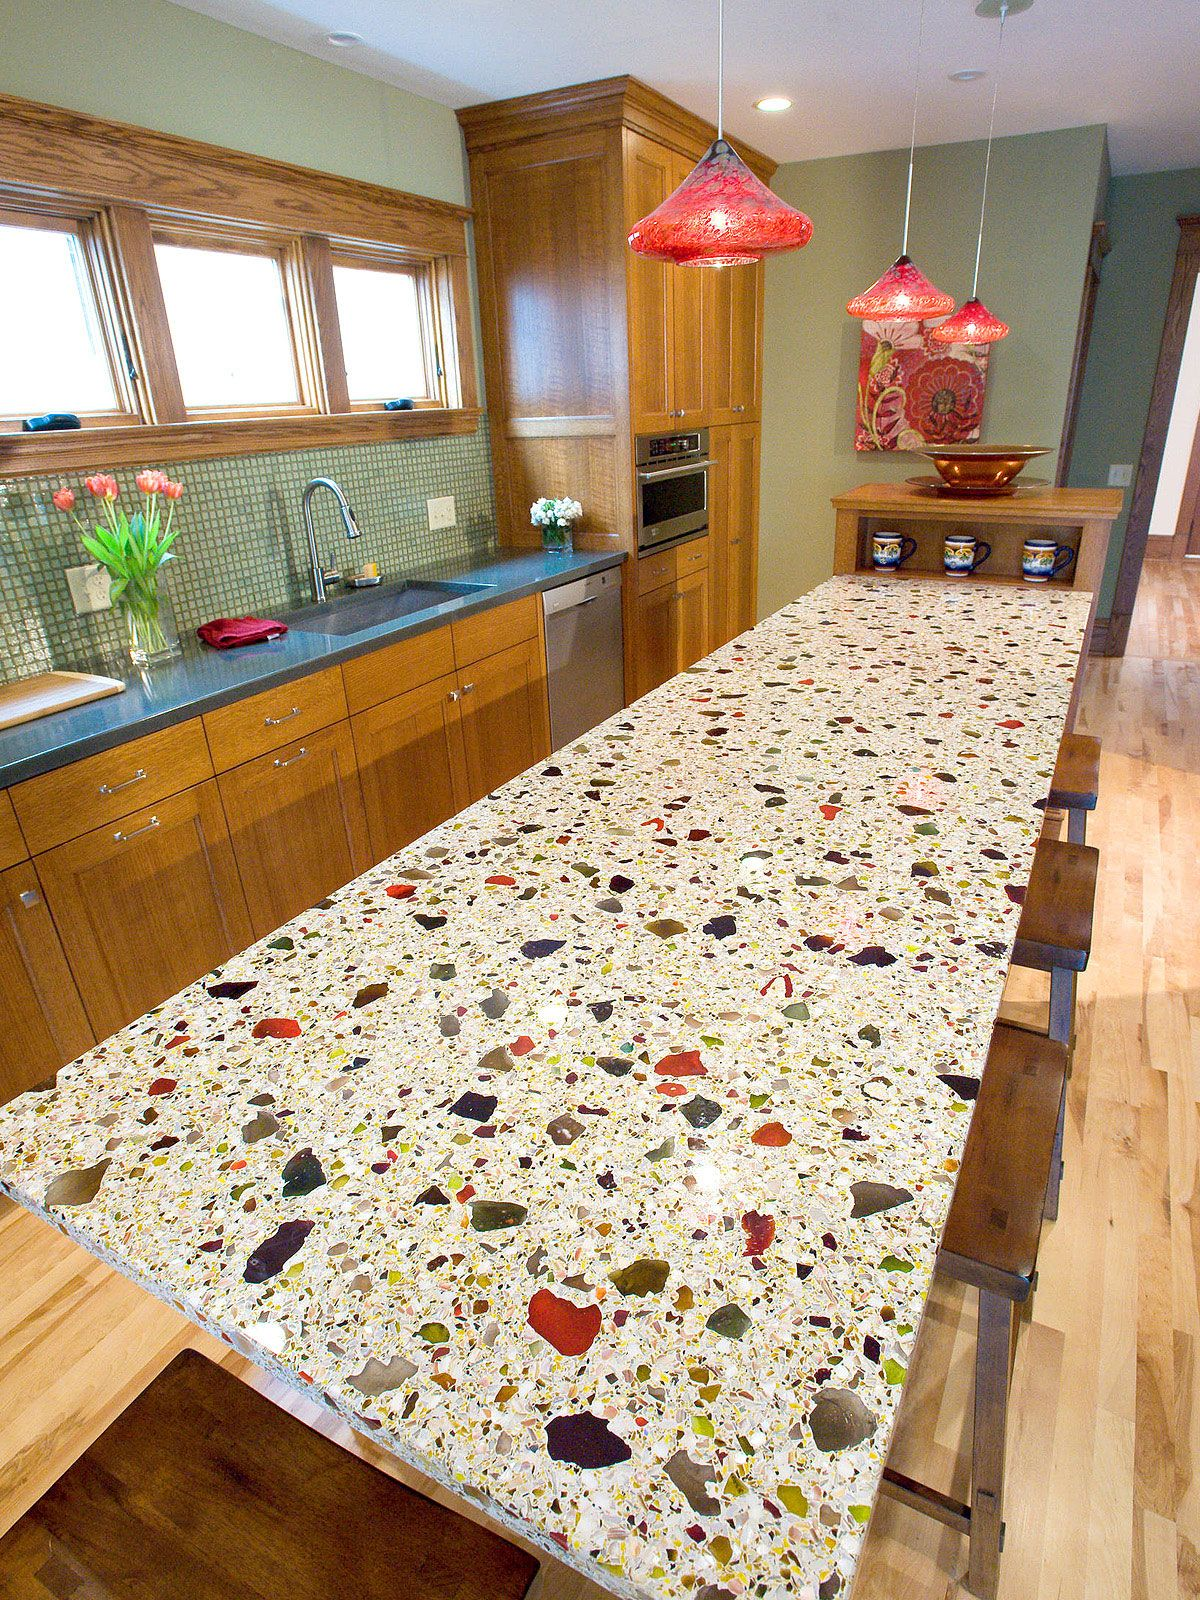 37 Recycled Glass Countertop Ideas Designs Tips Advice Glass Countertops Eclectic Kitchen Design Recycled Glass Countertops